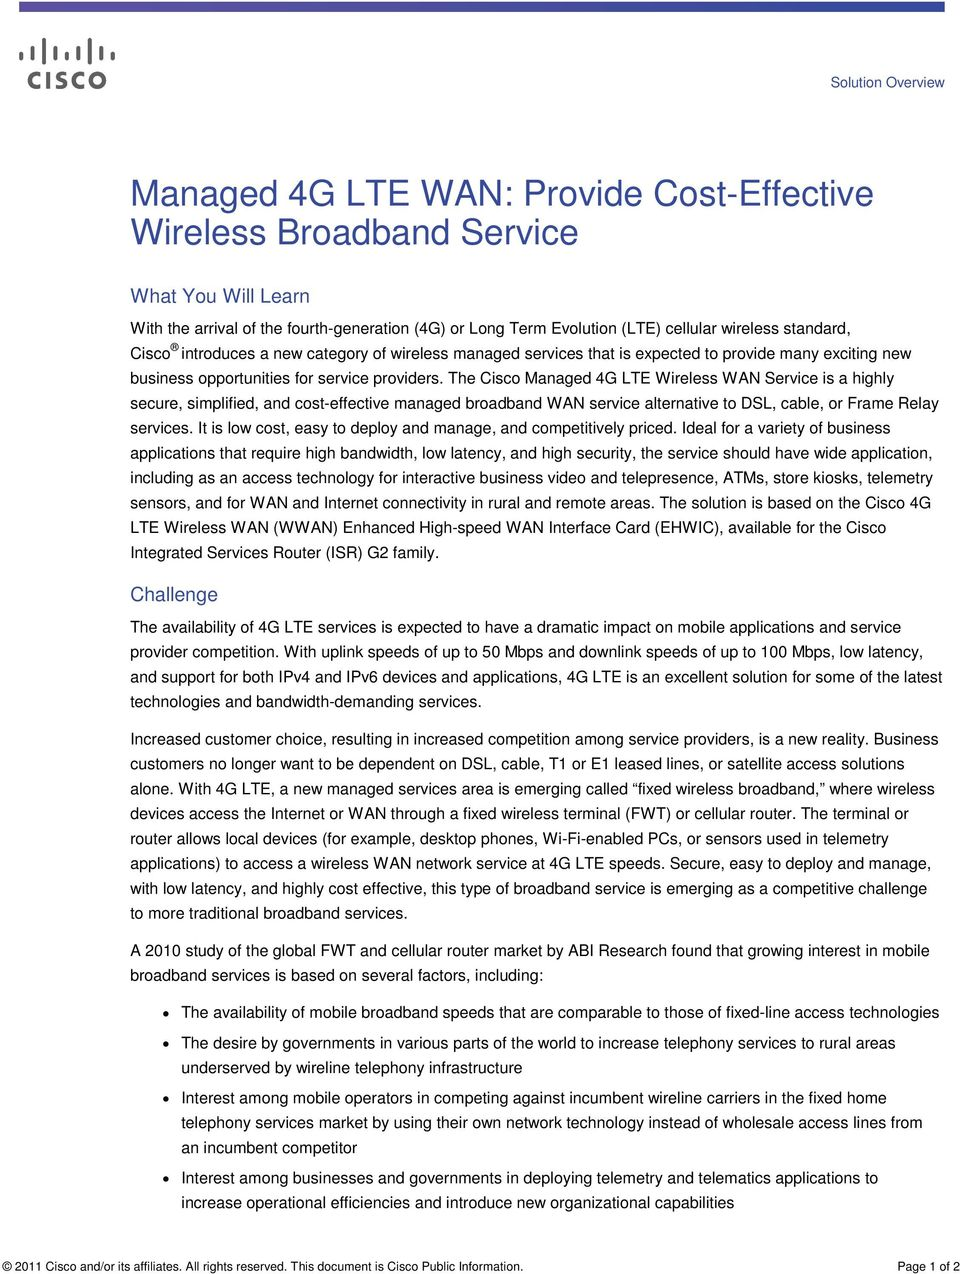 The Cisco Managed 4G LTE Wireless WAN Service is a highly secure, simplified, and cost-effective managed broadband WAN service alternative to DSL, cable, or Frame Relay services.